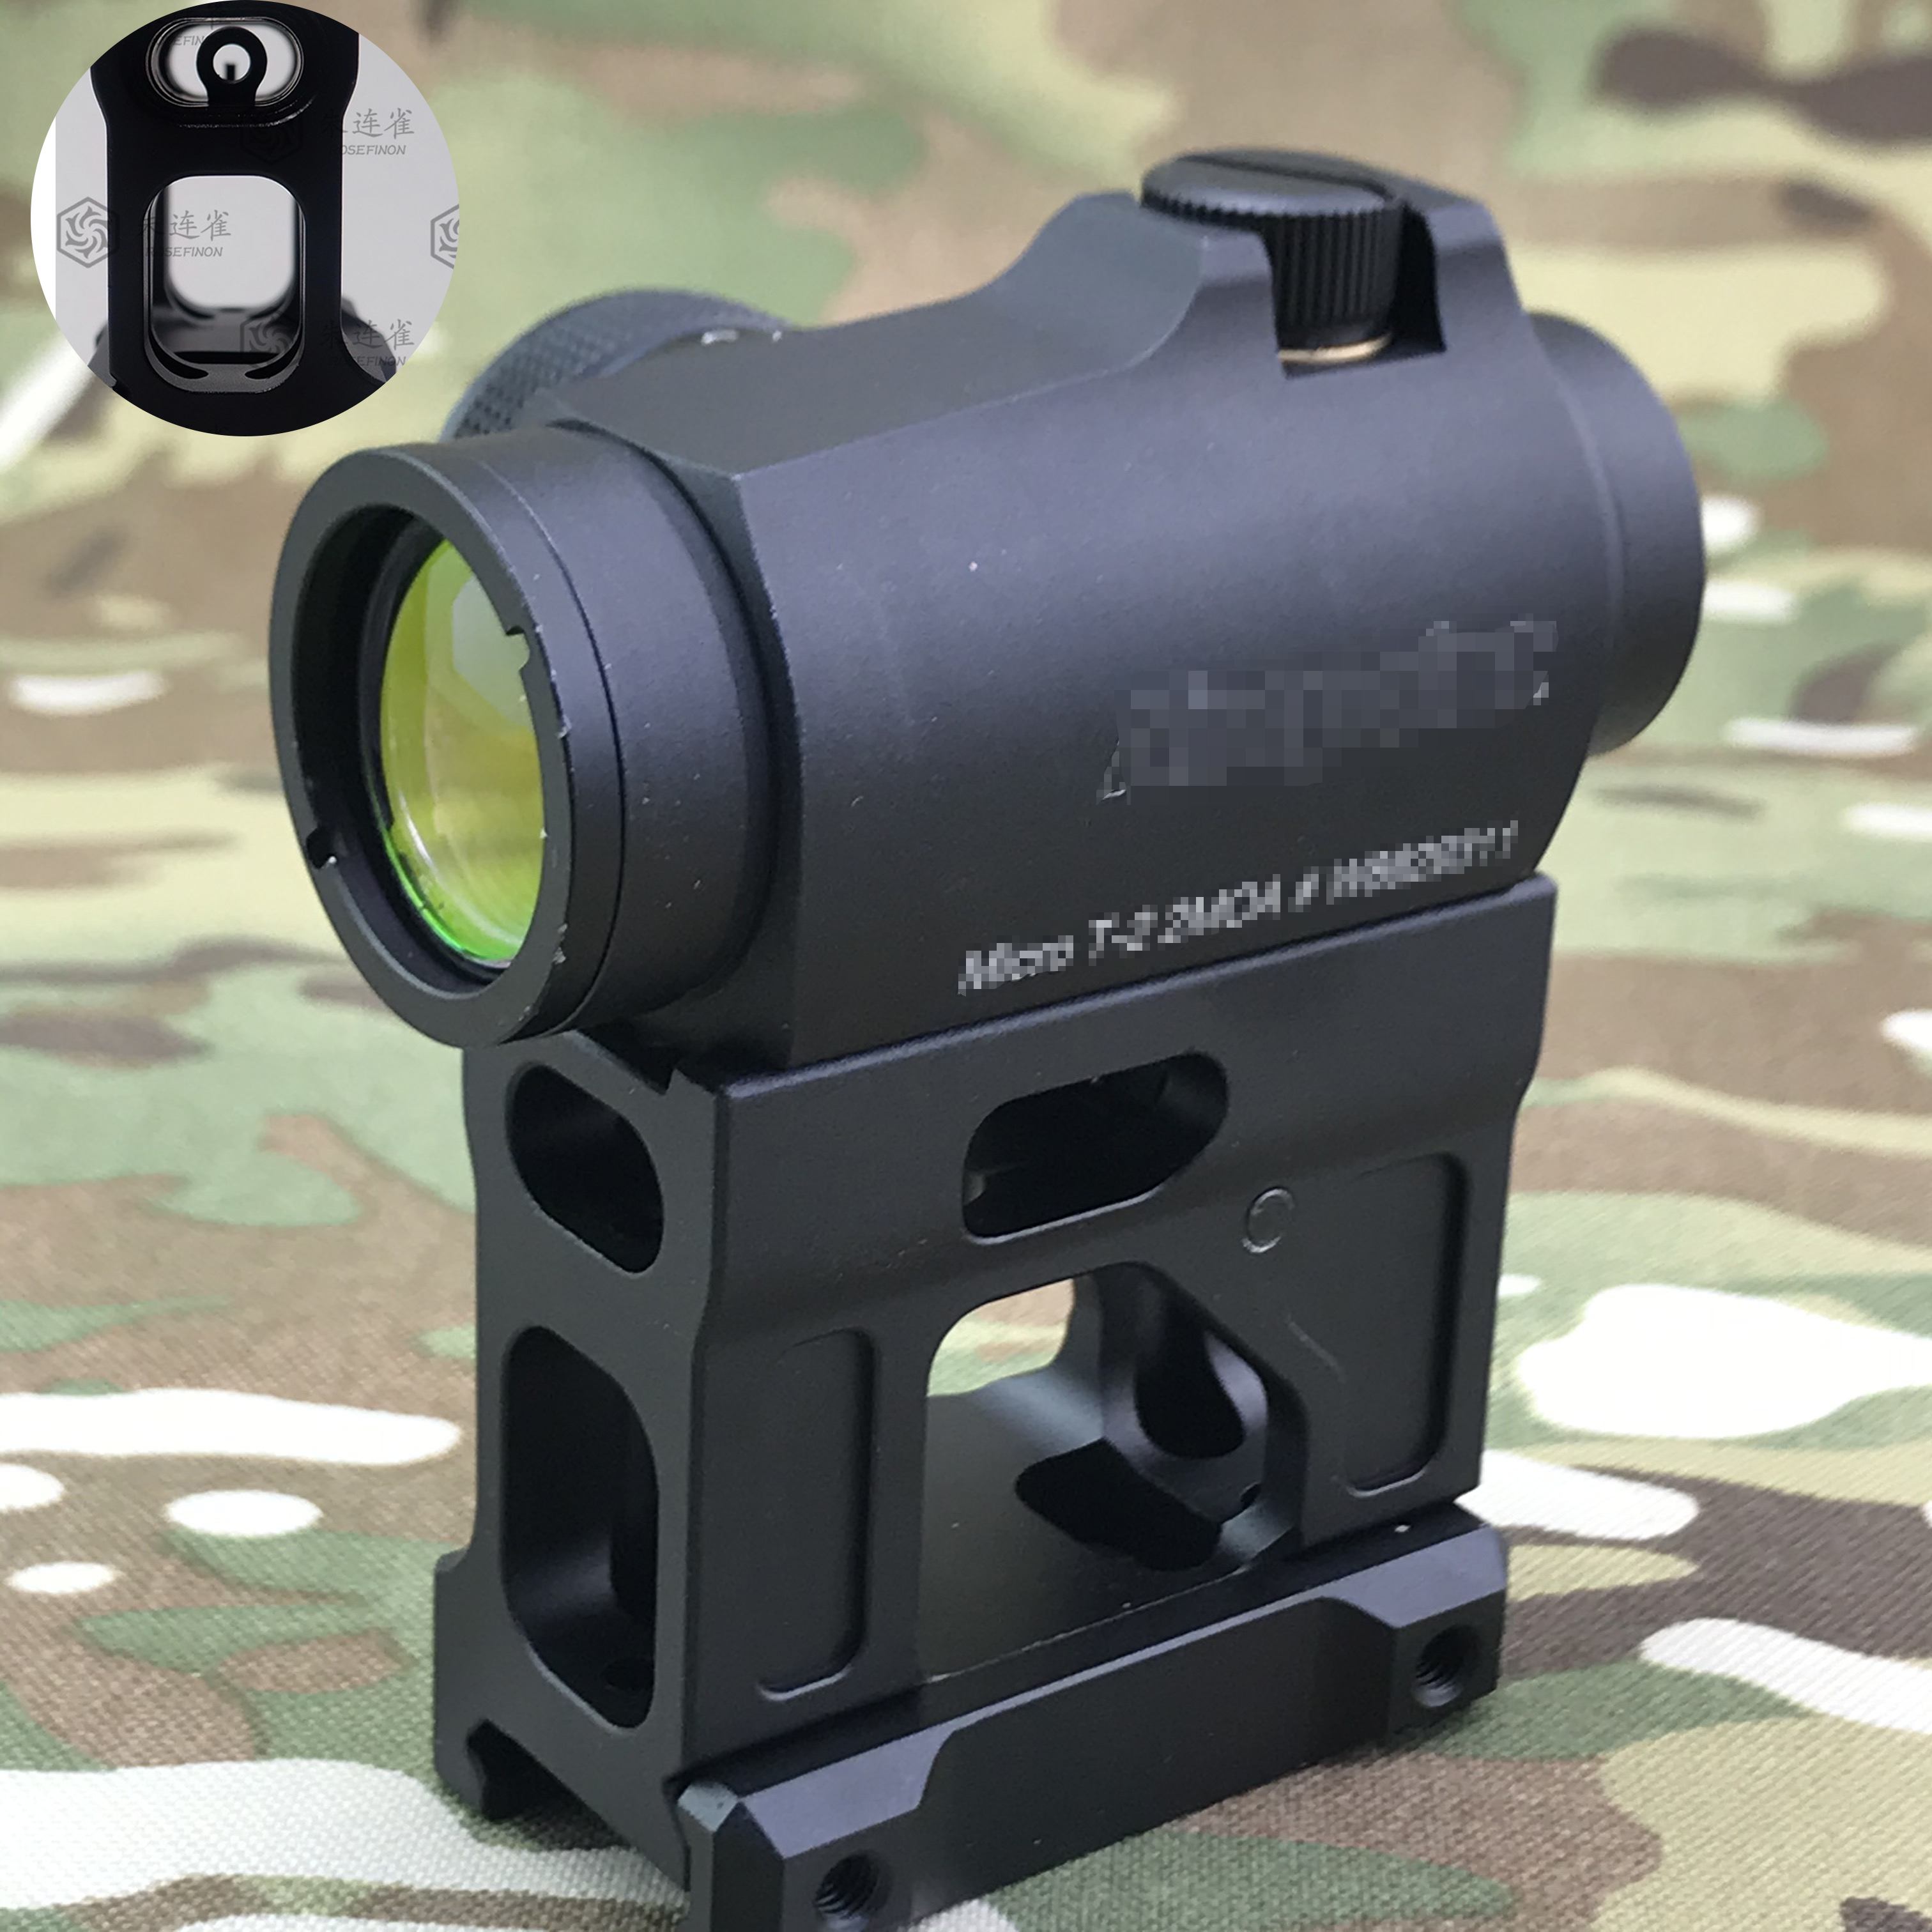 UN universale aumentando staffa red dot sightTARGET F1 Mount per Airsoft T1 / T-1 / T2 / T-2 / TARGET TR02 Red Dot (Nero/Tan)